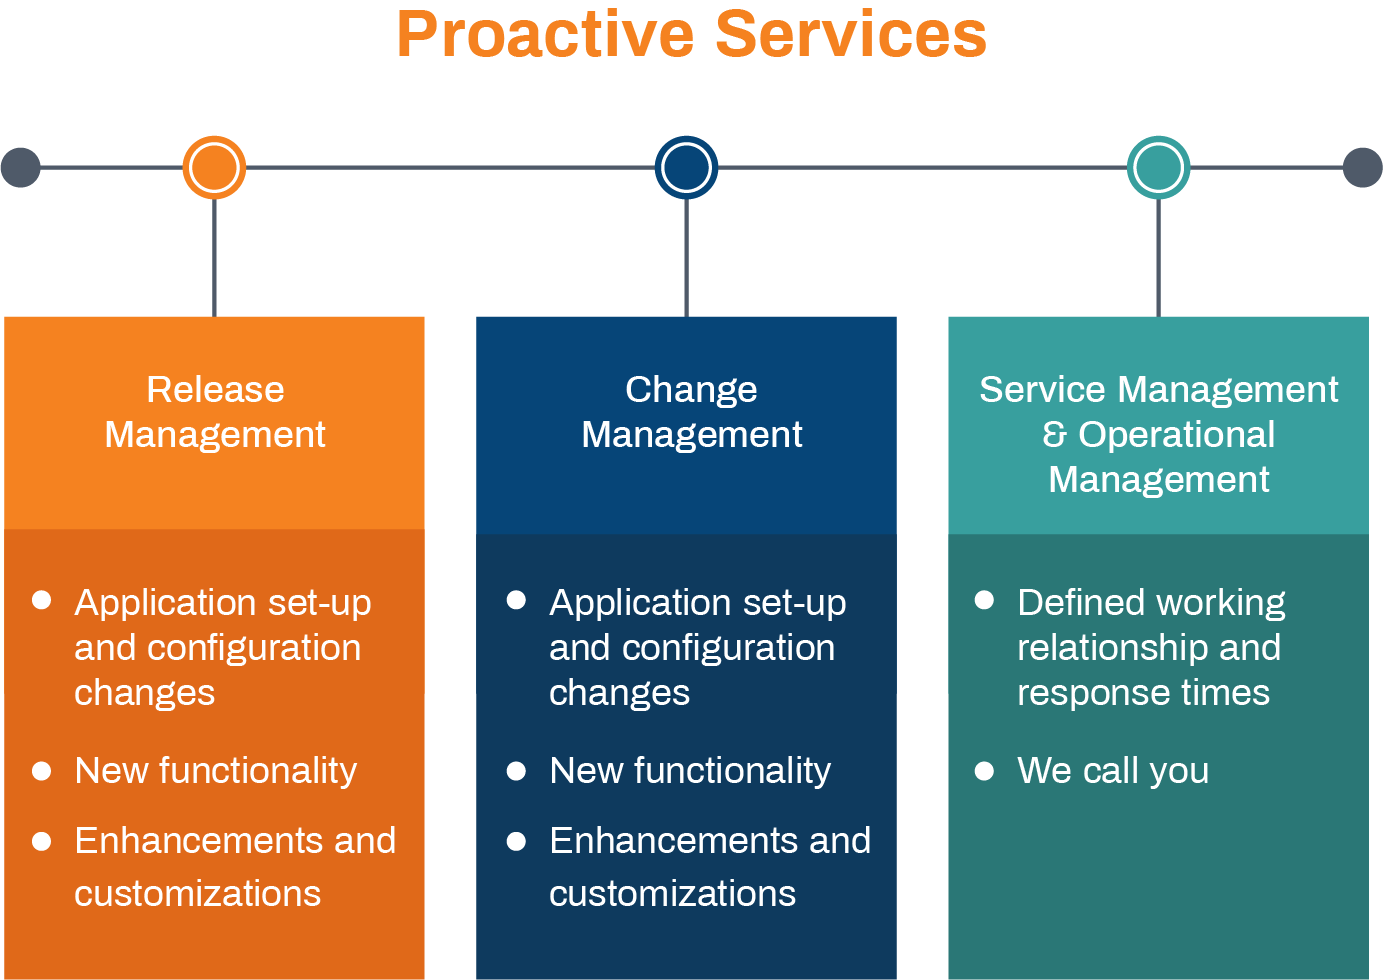 proactive services of application management services